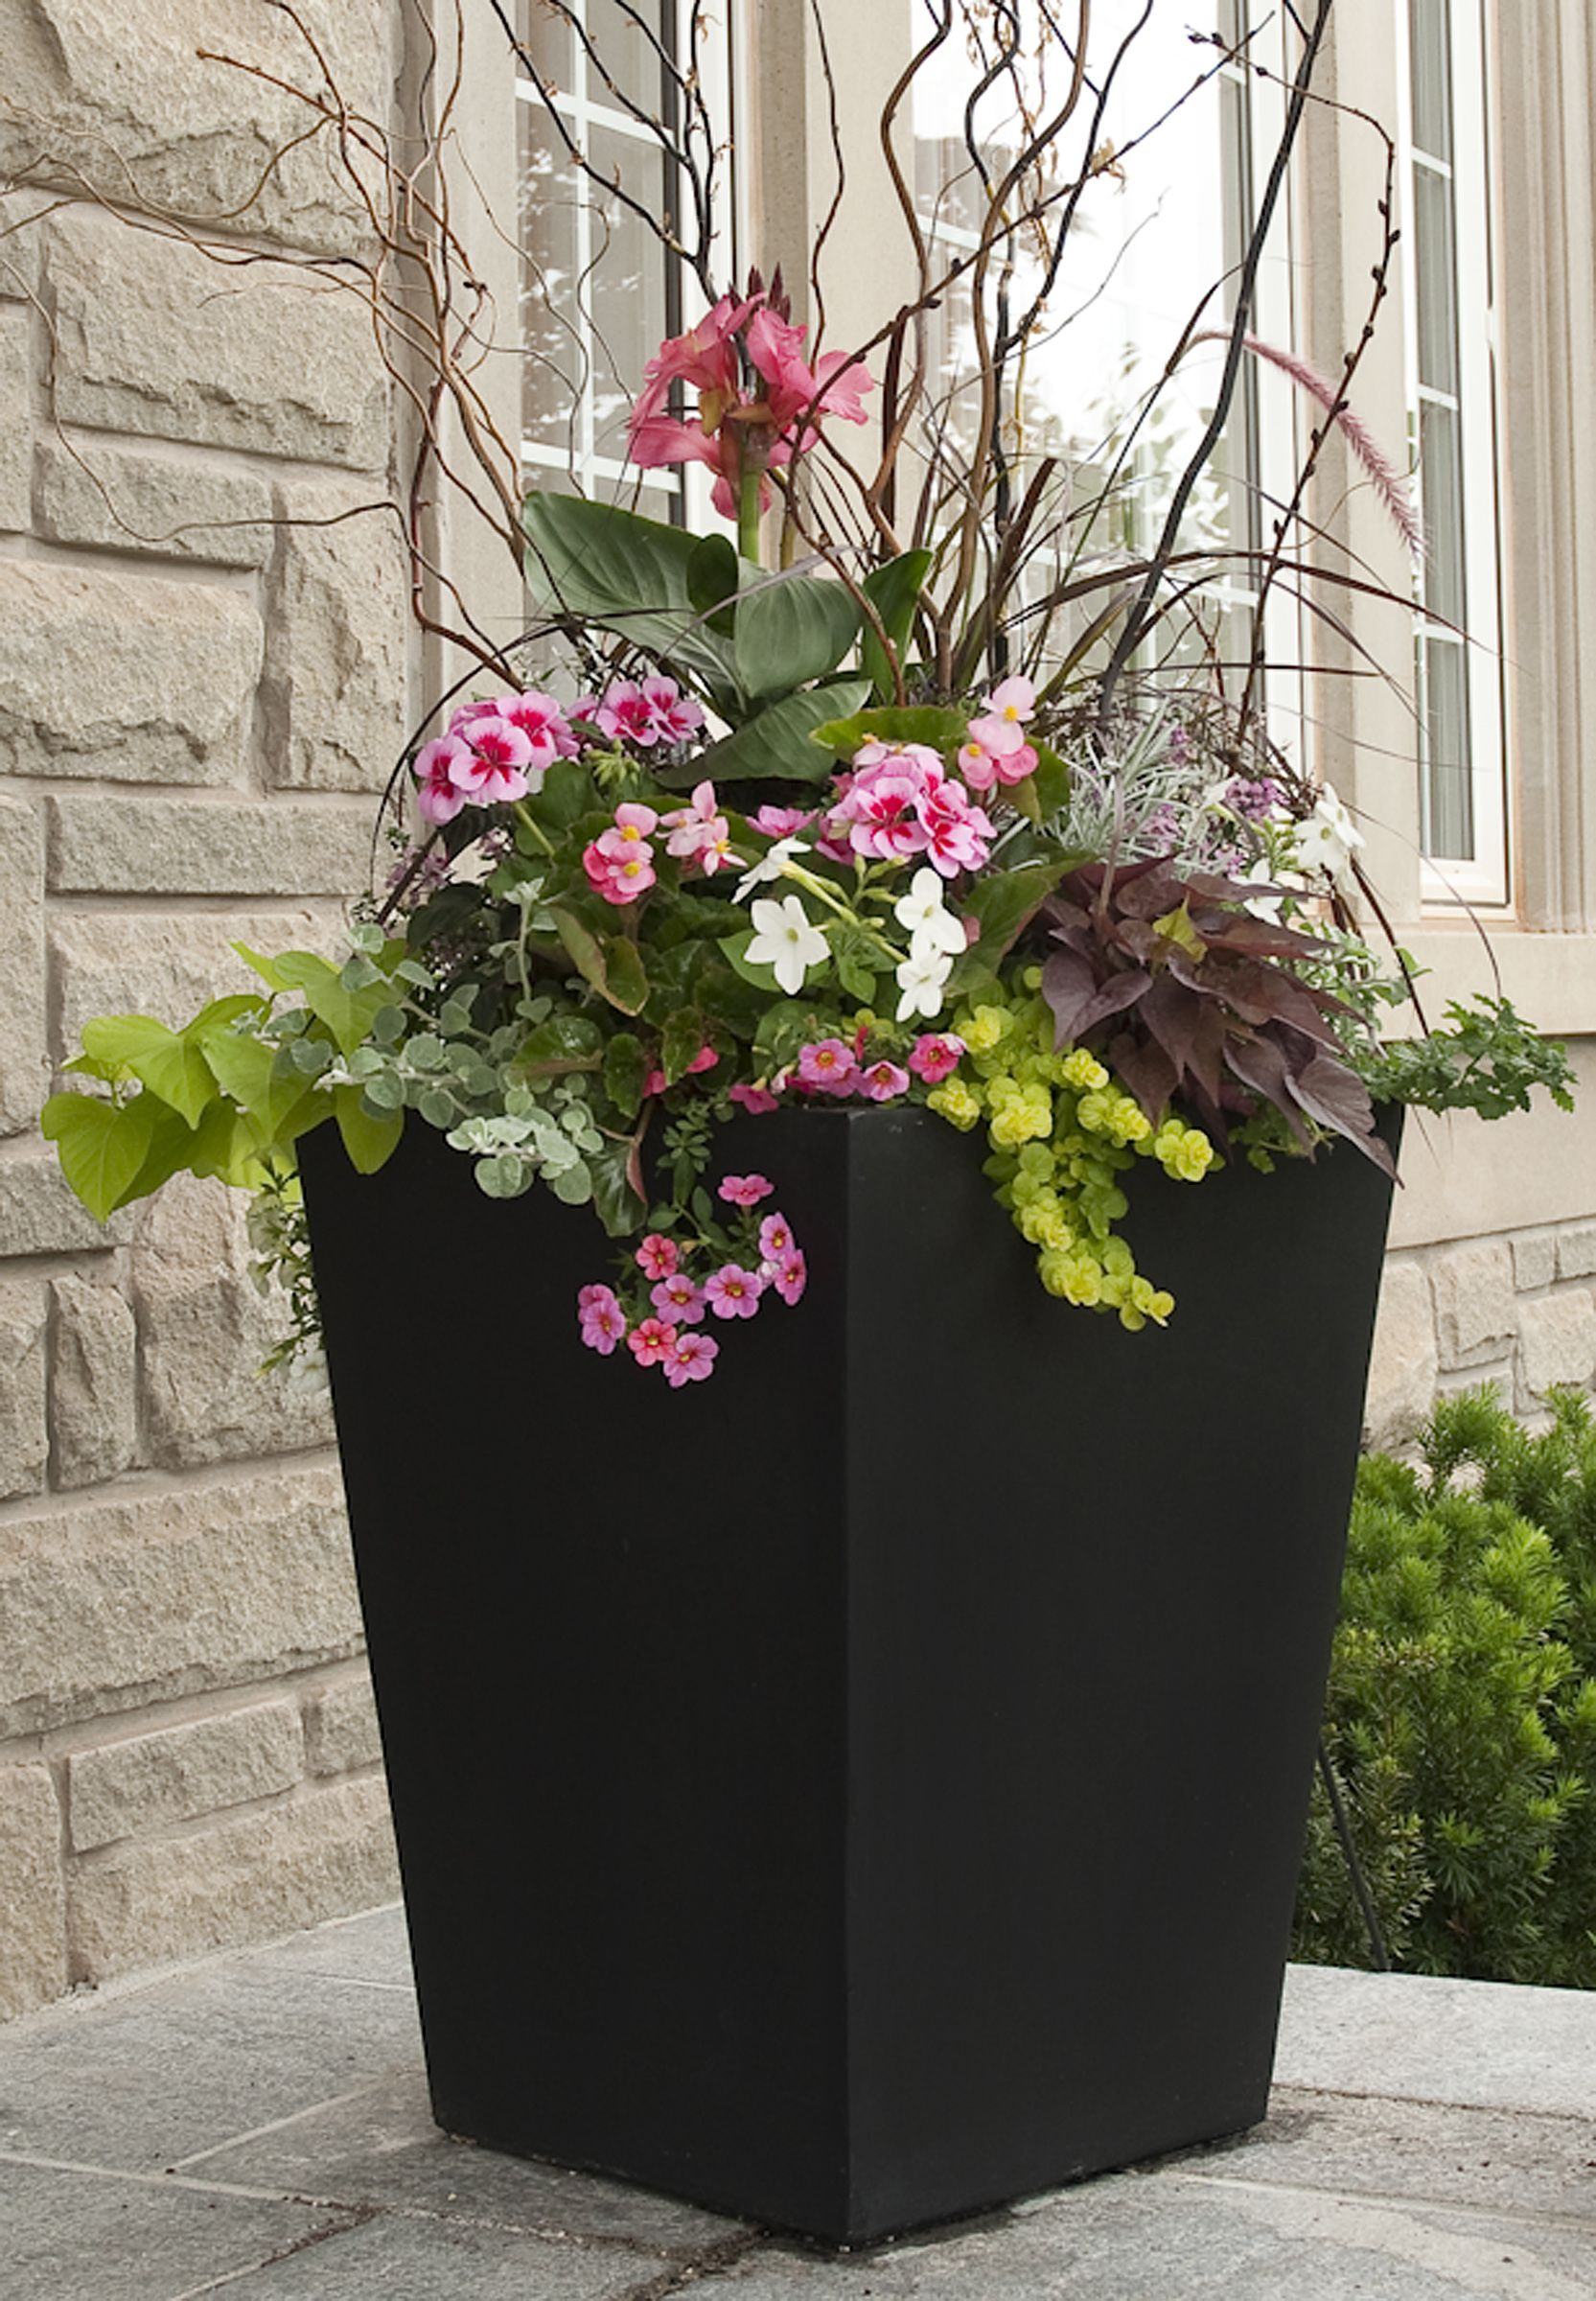 Planter pot for gardeners Smart variations in color textures